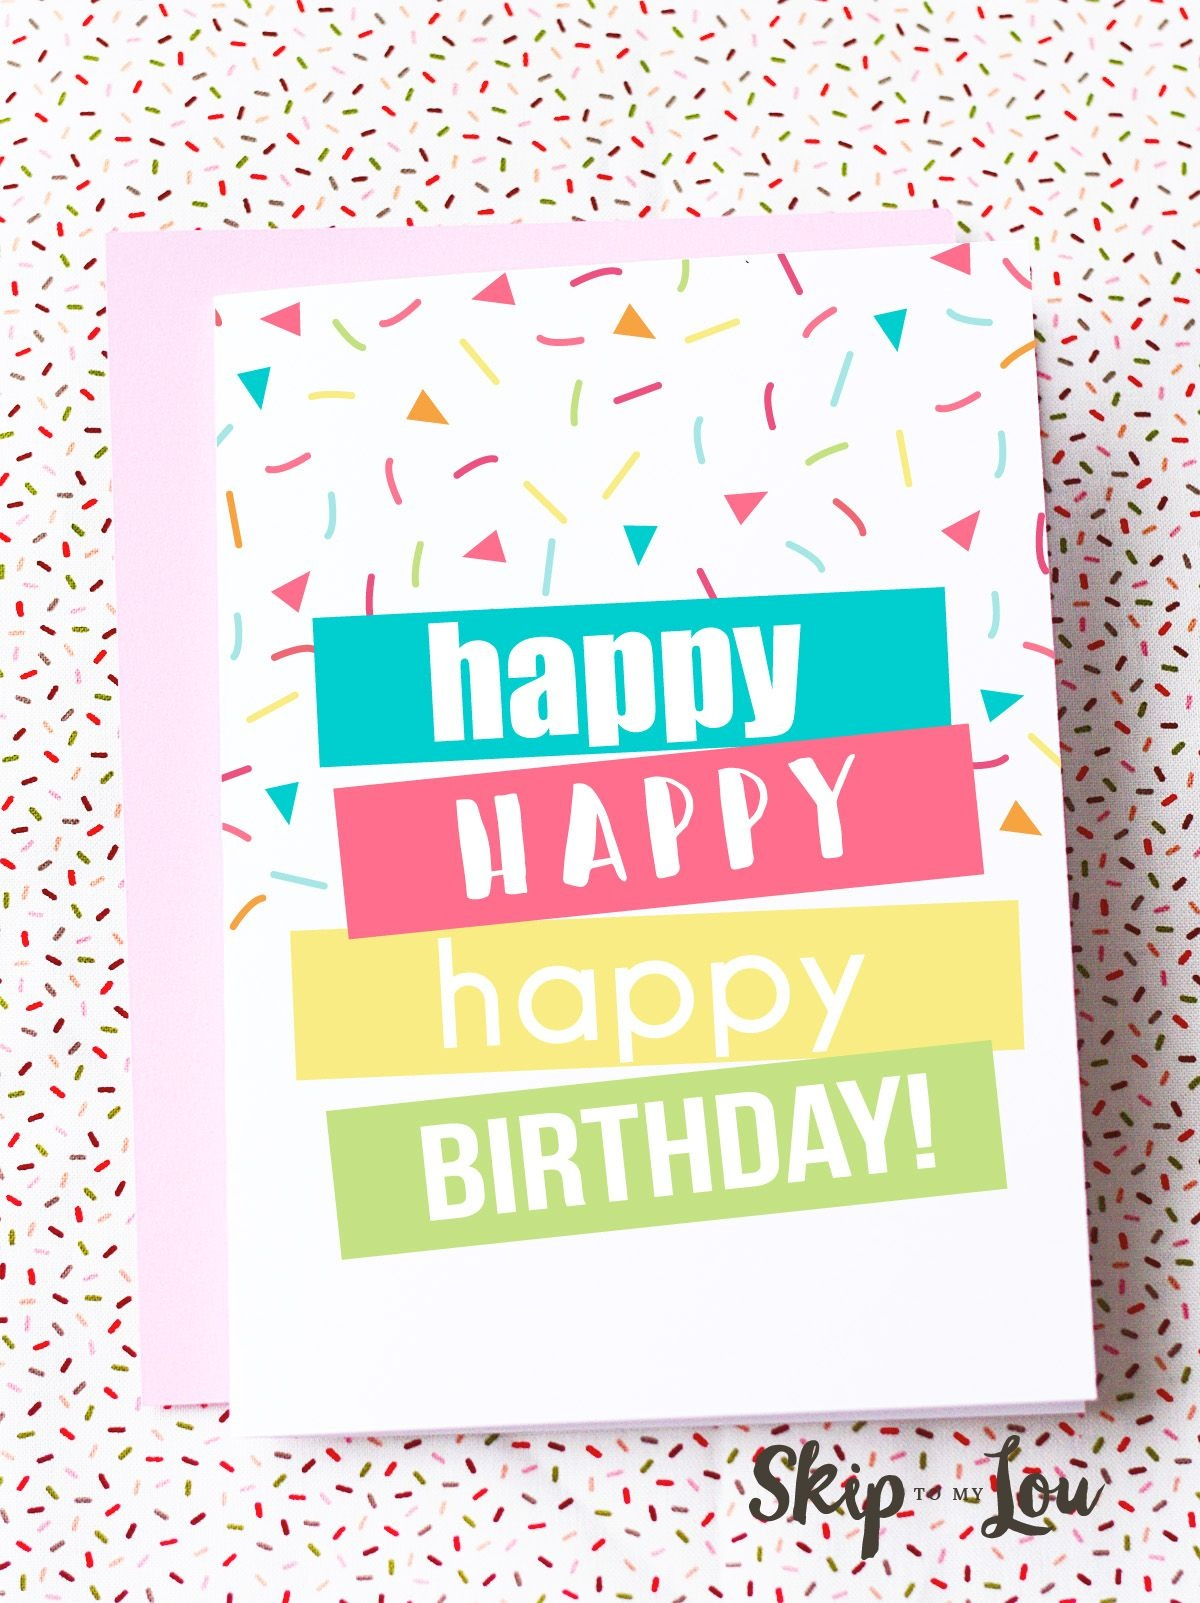 Free Printable Birthday Cards | Best Of Pinterest | Free Printable - Free Printable Birthday Cards For Your Best Friend